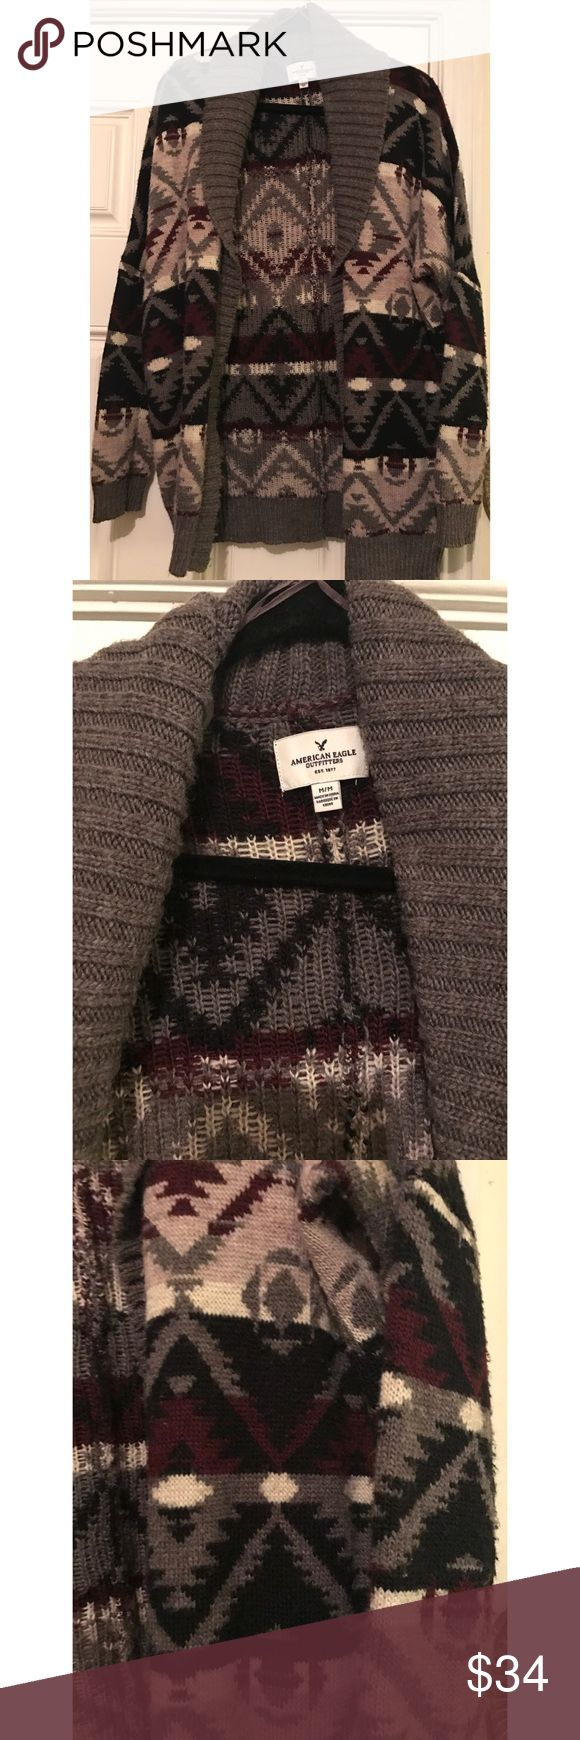 American Eagle 🦅 Aztec Print Cardigan Size M American Eagle 🦅 Aztec Print Cardigan Size M Gray& Burgundy Color. Great for the transition to Spring! American Eagle Outfitters Sweaters Cardigans